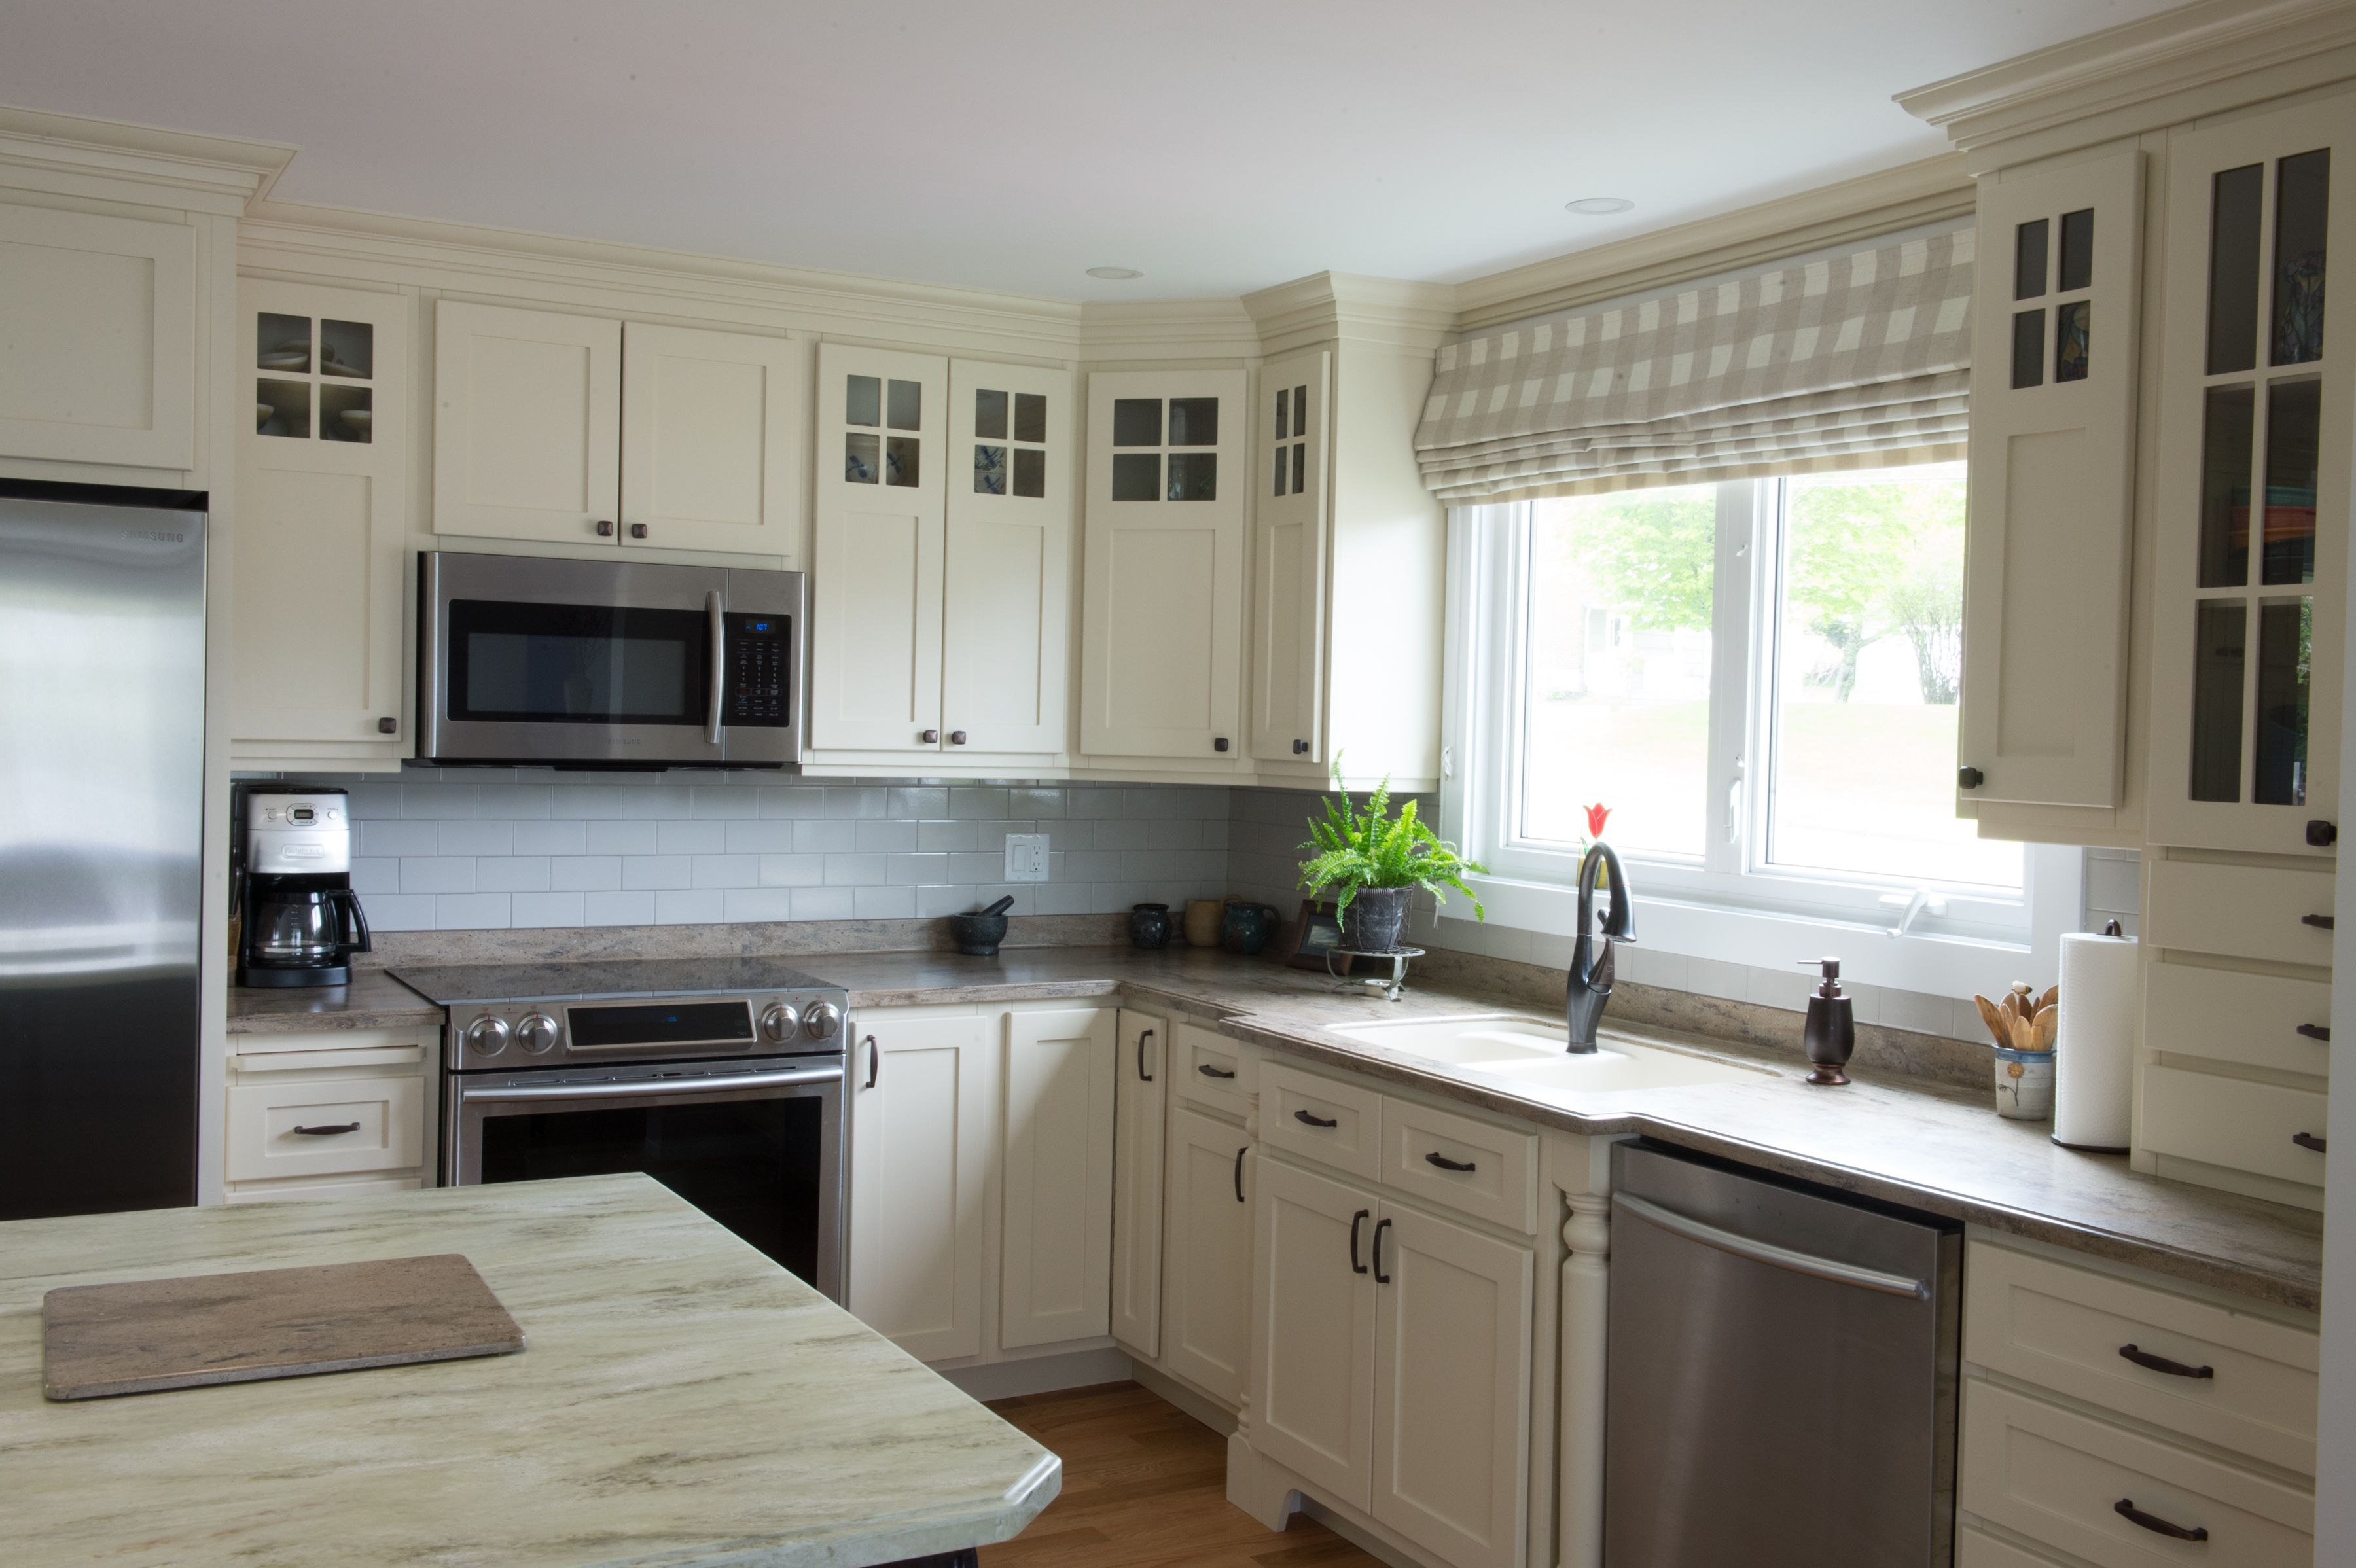 Custom Kitchen Cabinets Designed And Purchased From Hubcraft Timber Mart Come In See W Custom Kitchen Cabinets Design Custom Kitchen Cabinets Kitchen Design